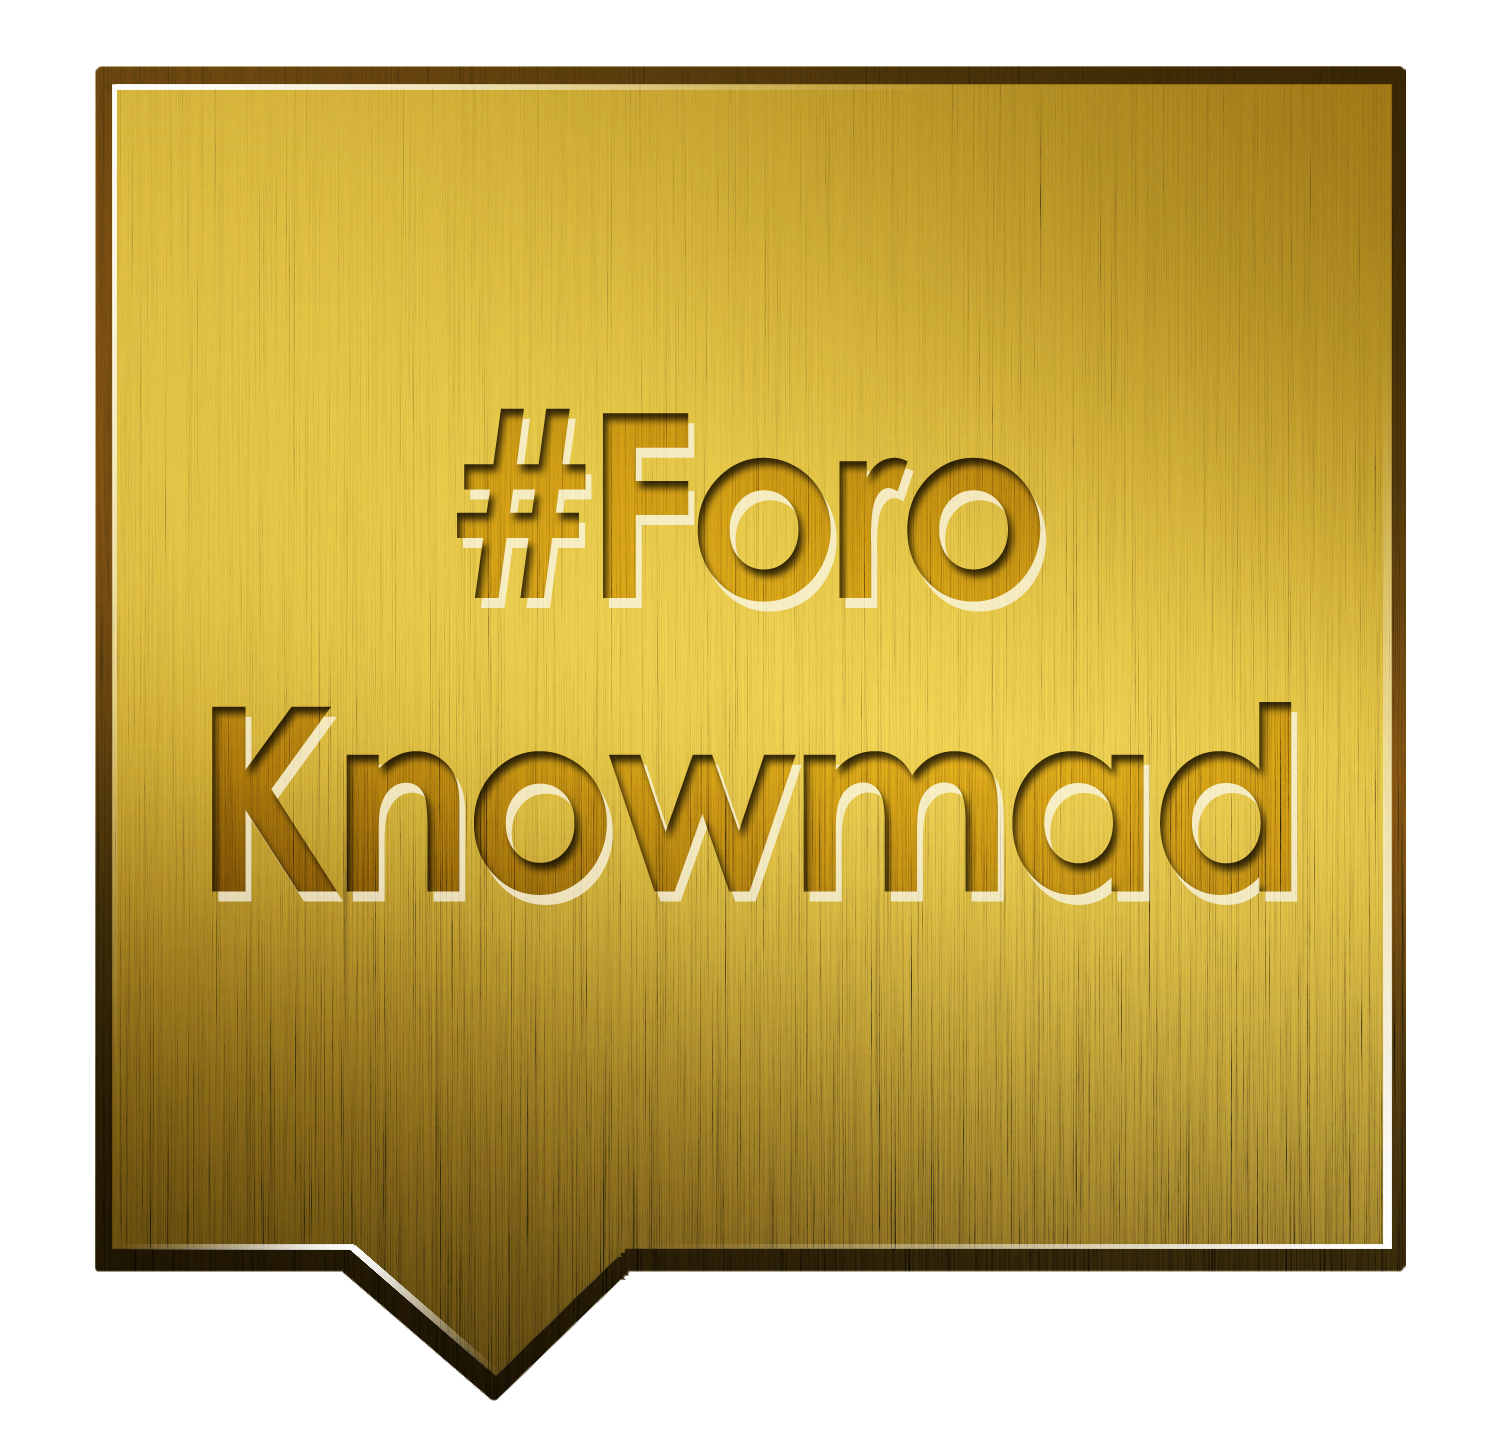 FORO KNOWMAD